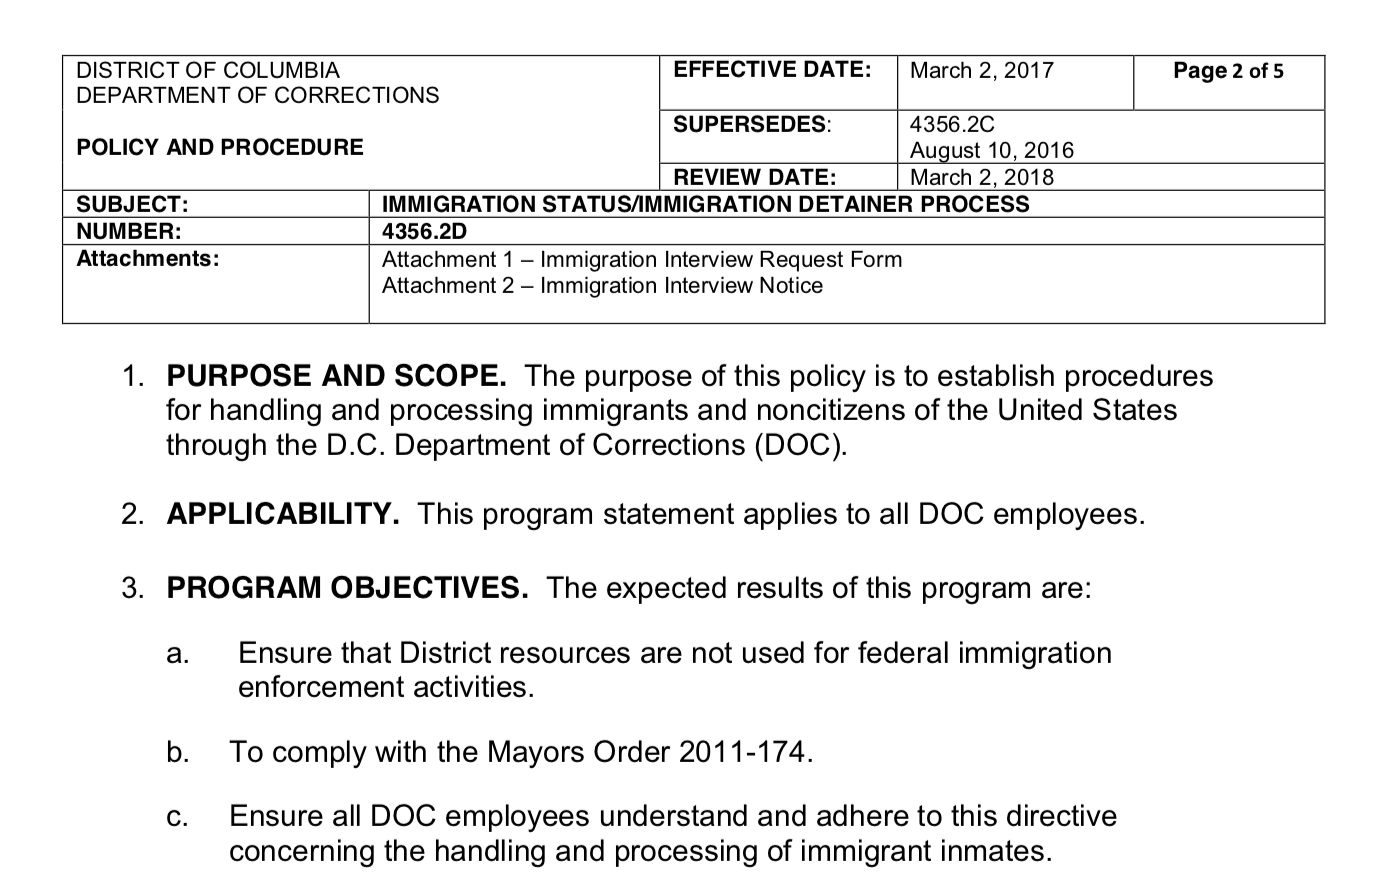 California records show state dealing with immigration